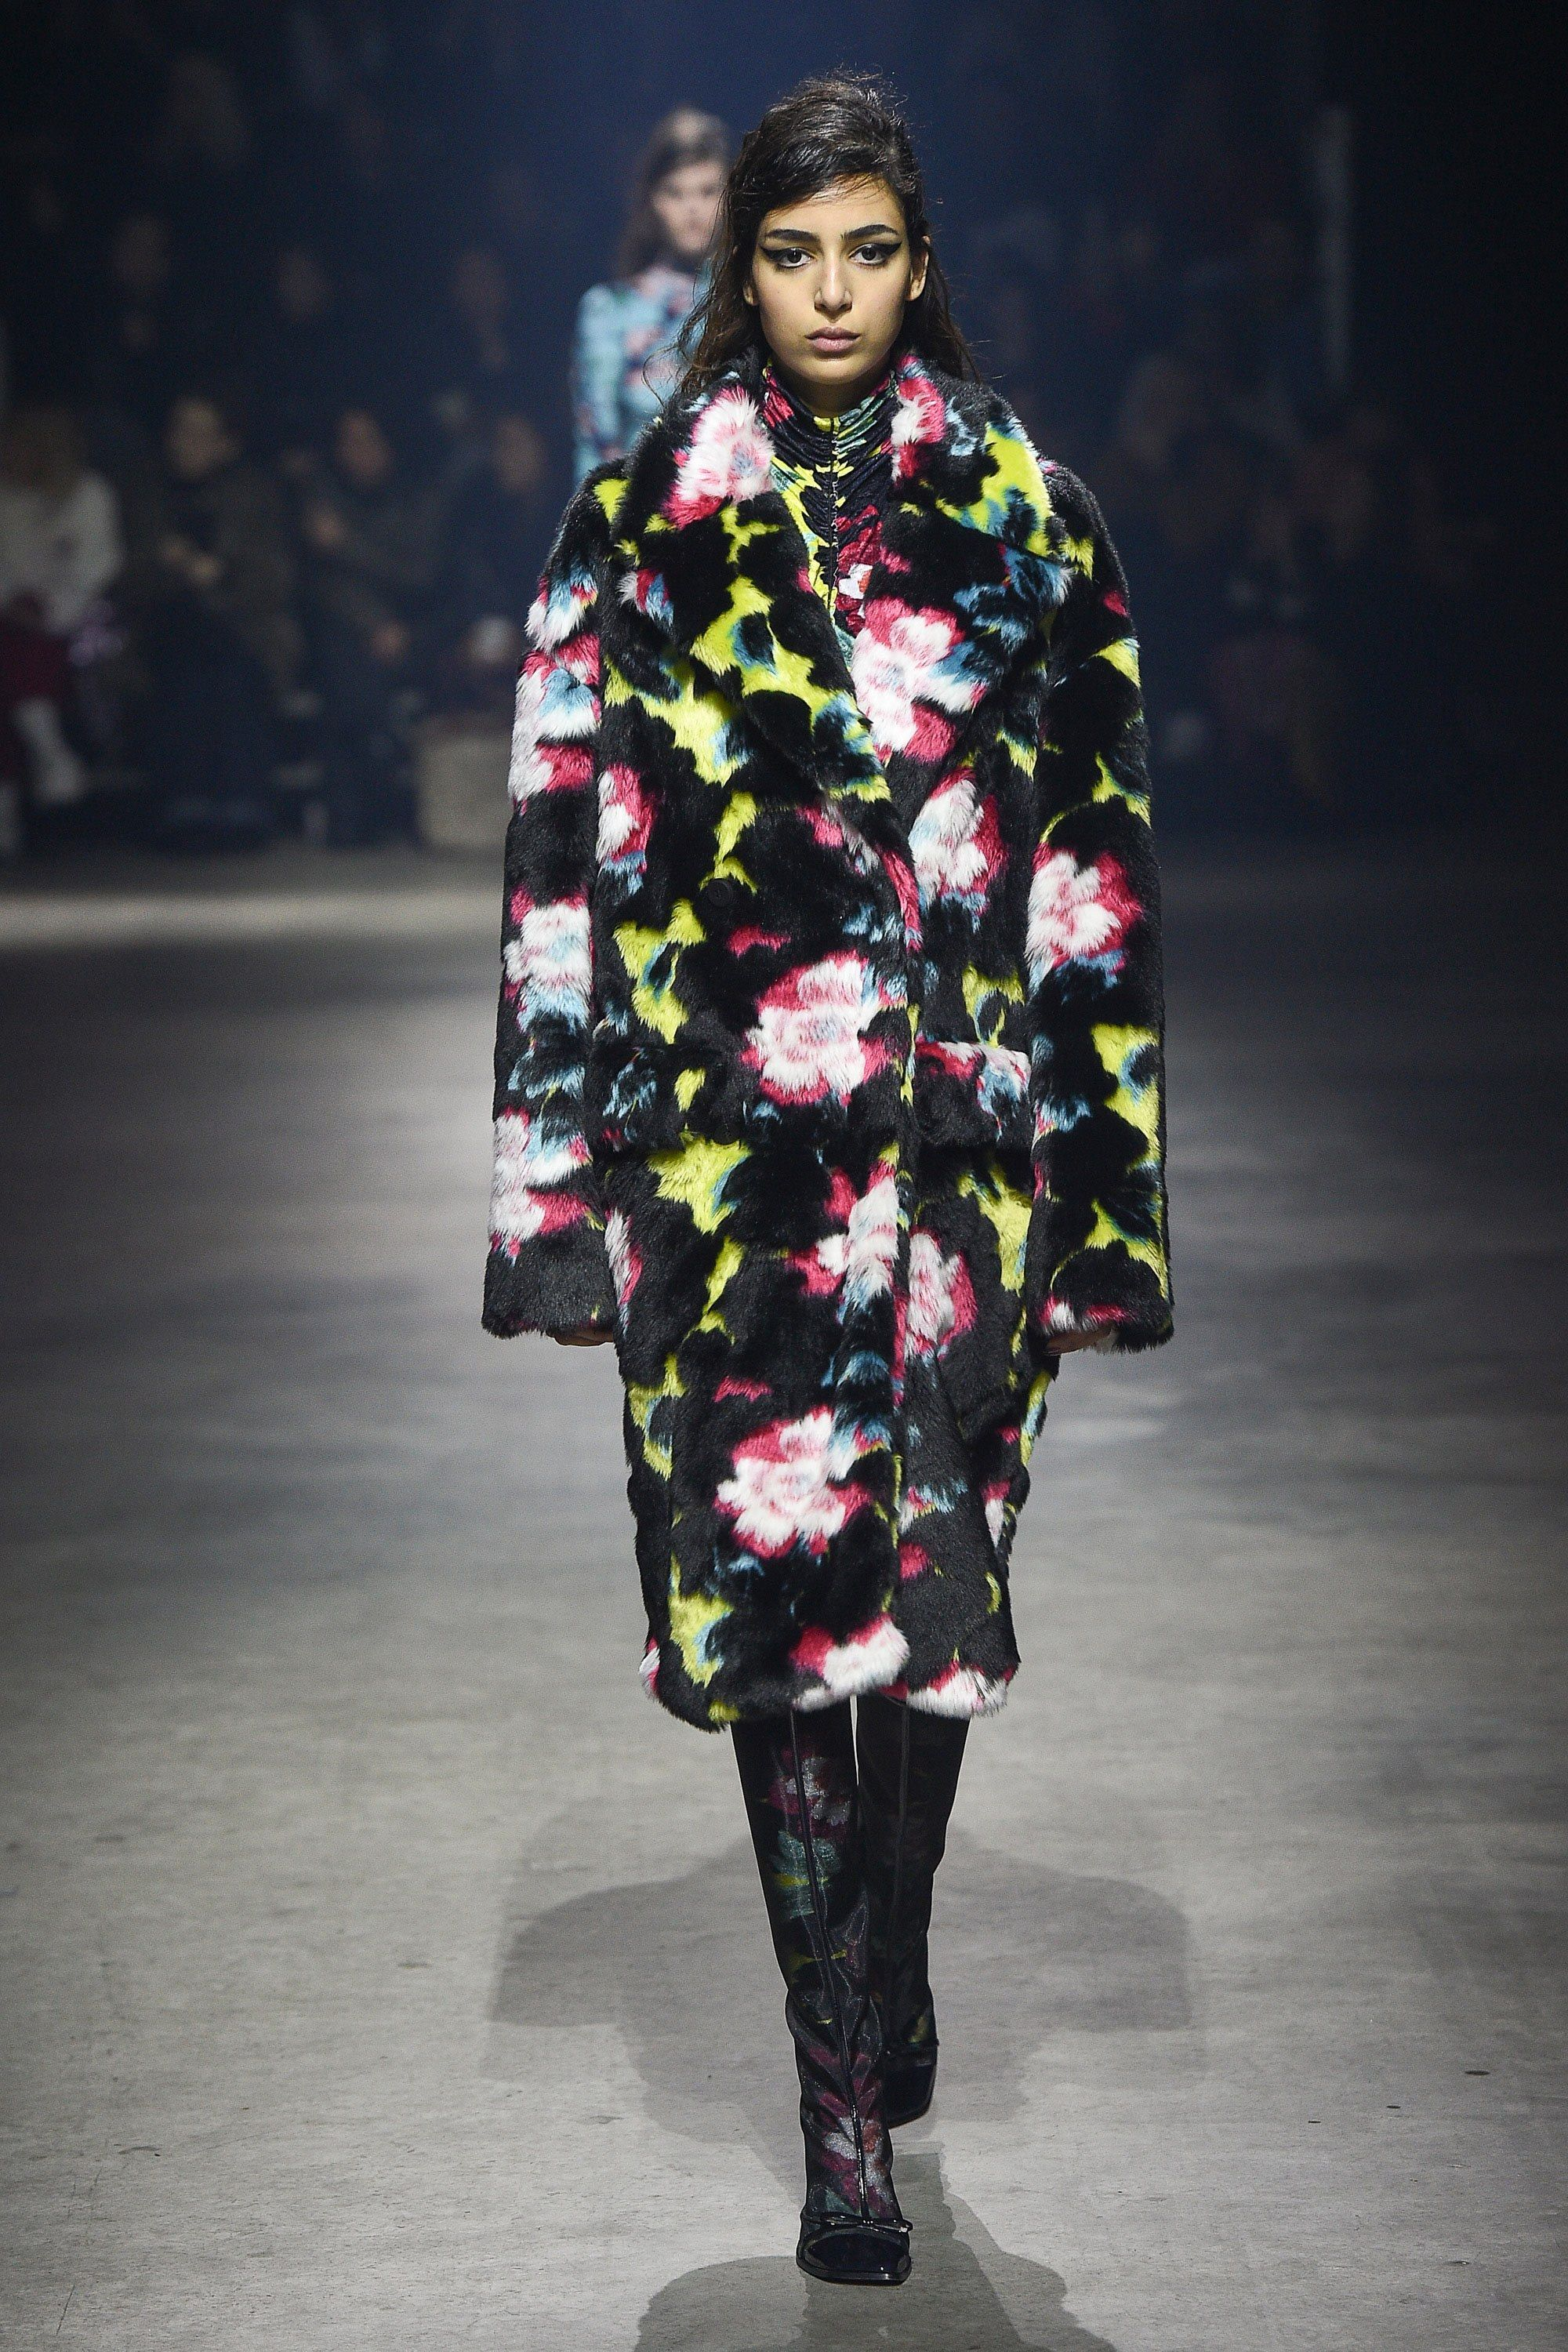 05a83ead8 Kenzo Fall 2018 Ready-to-Wear Fashion Show | Kenzo | Pinterest ...